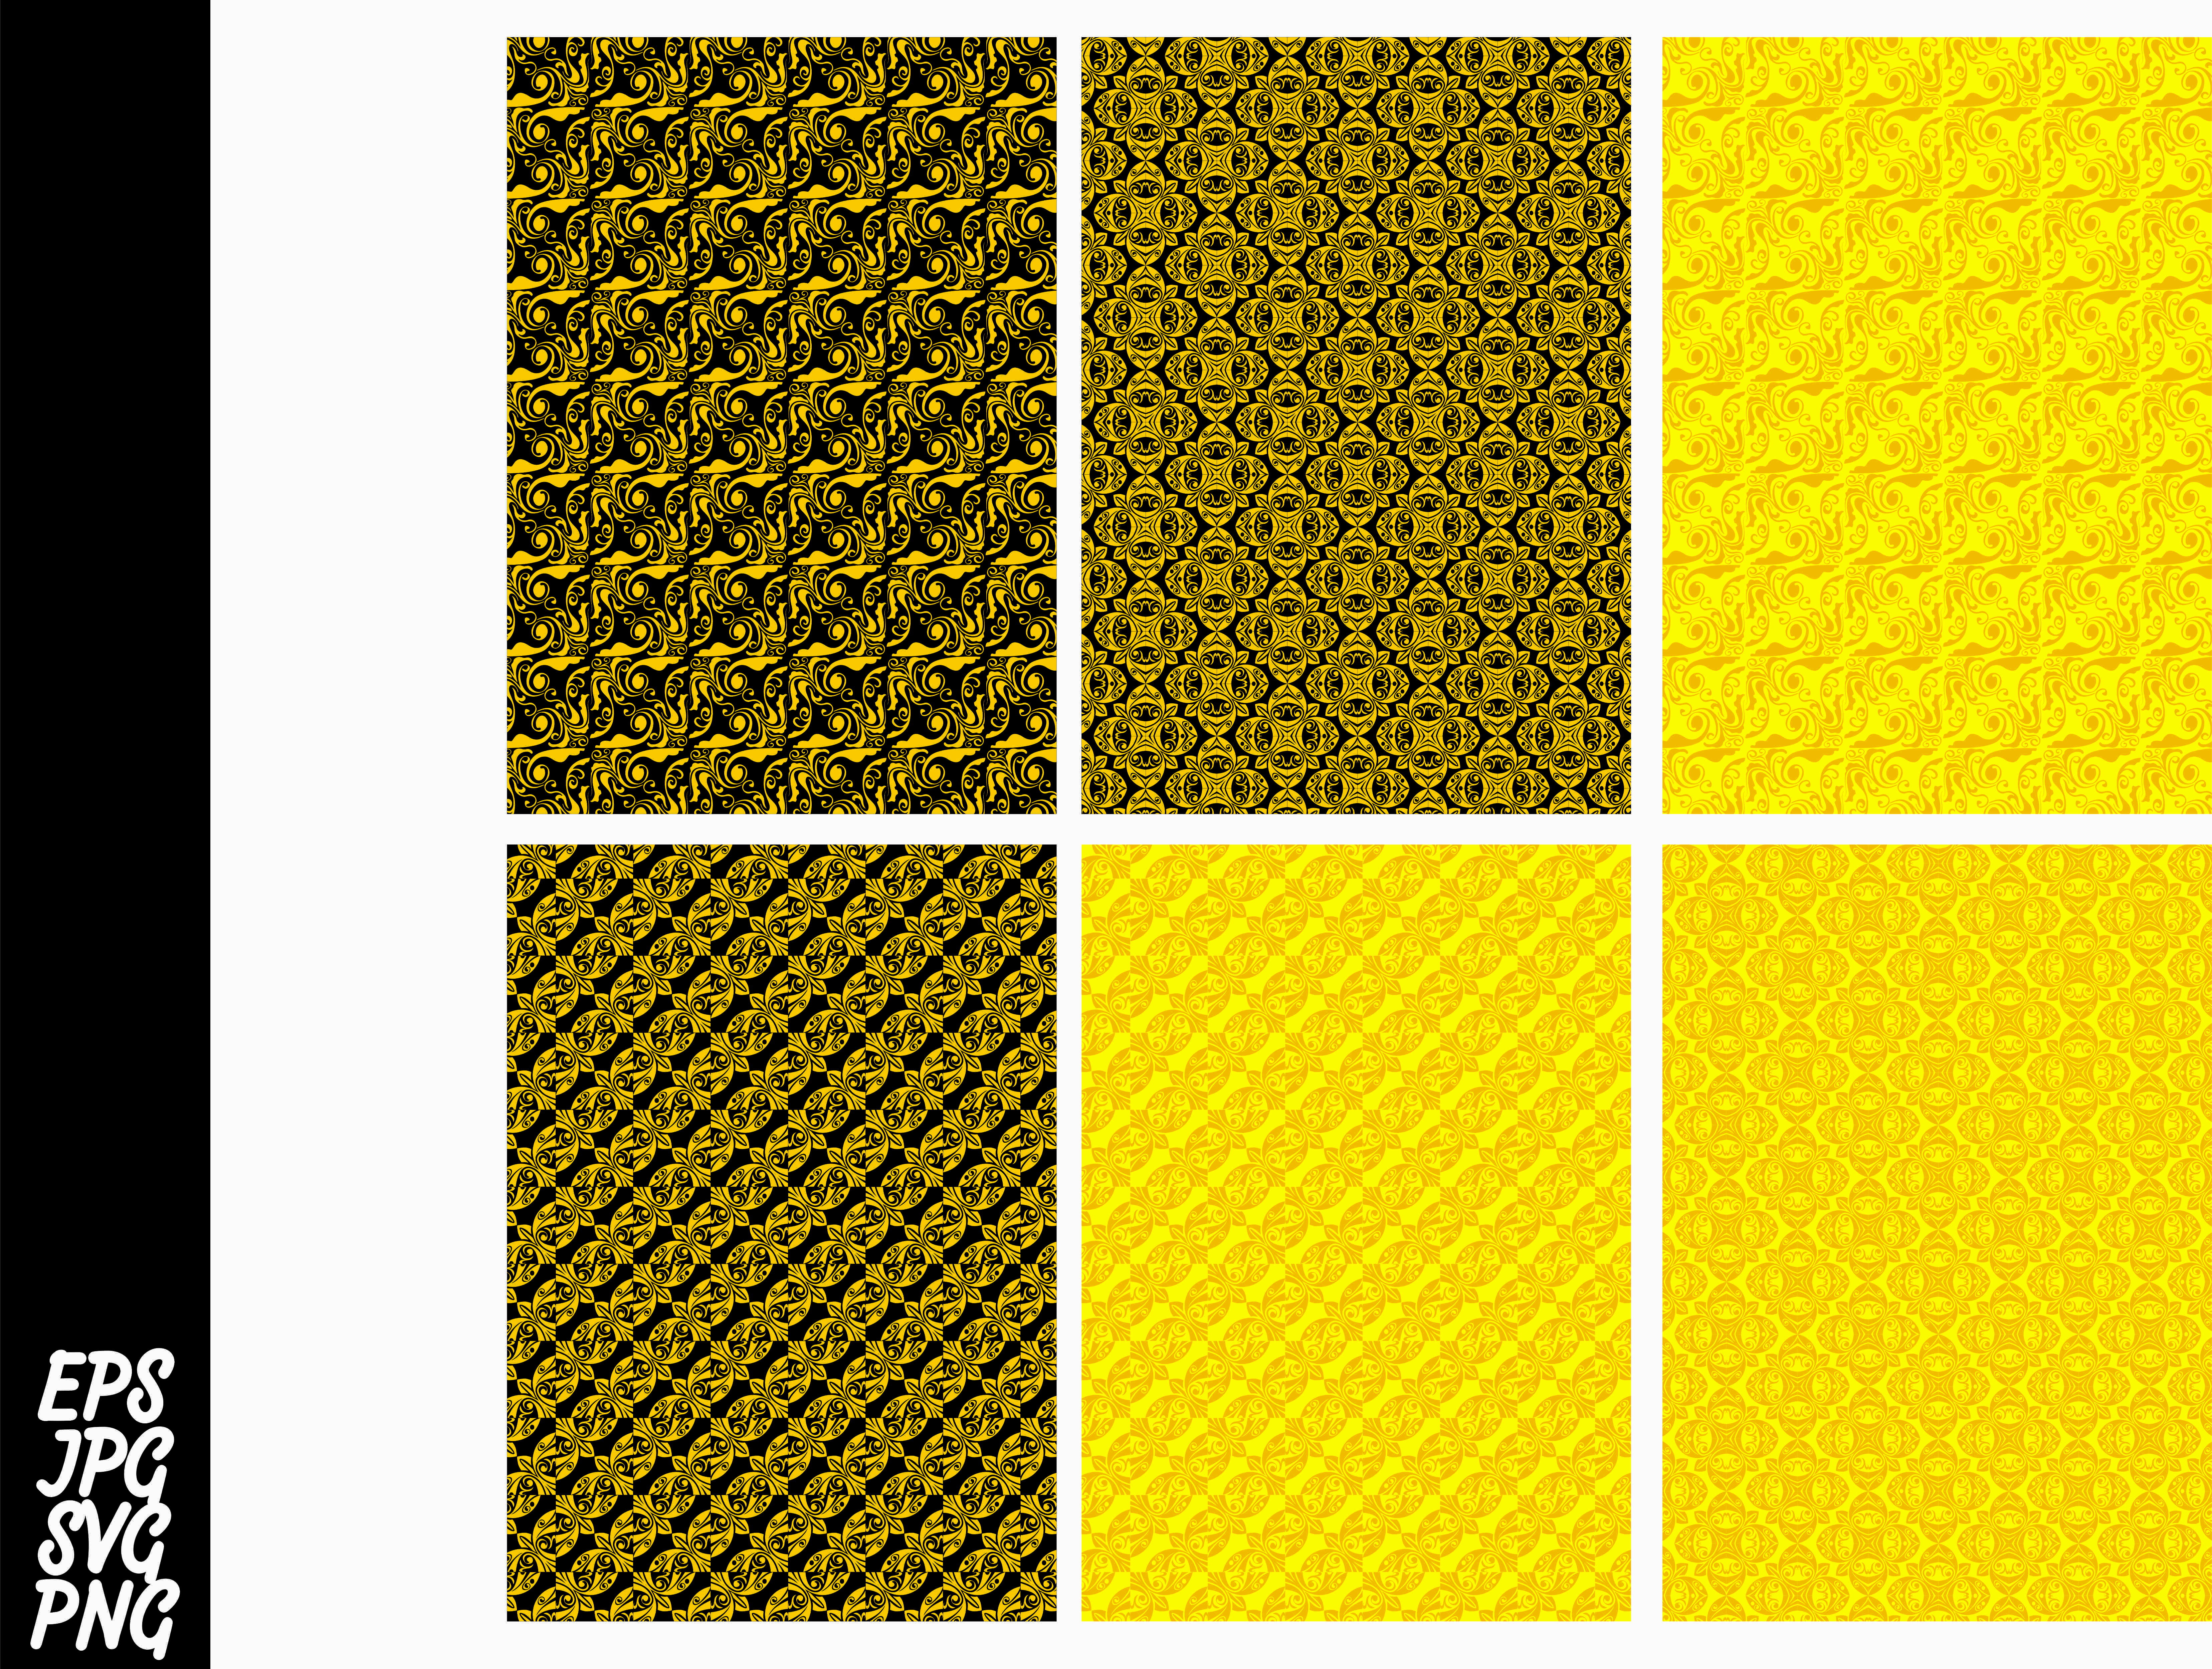 Download Free Yellow Ornament Pattern Svg Bundle Graphic By Arief Sapta Adjie for Cricut Explore, Silhouette and other cutting machines.